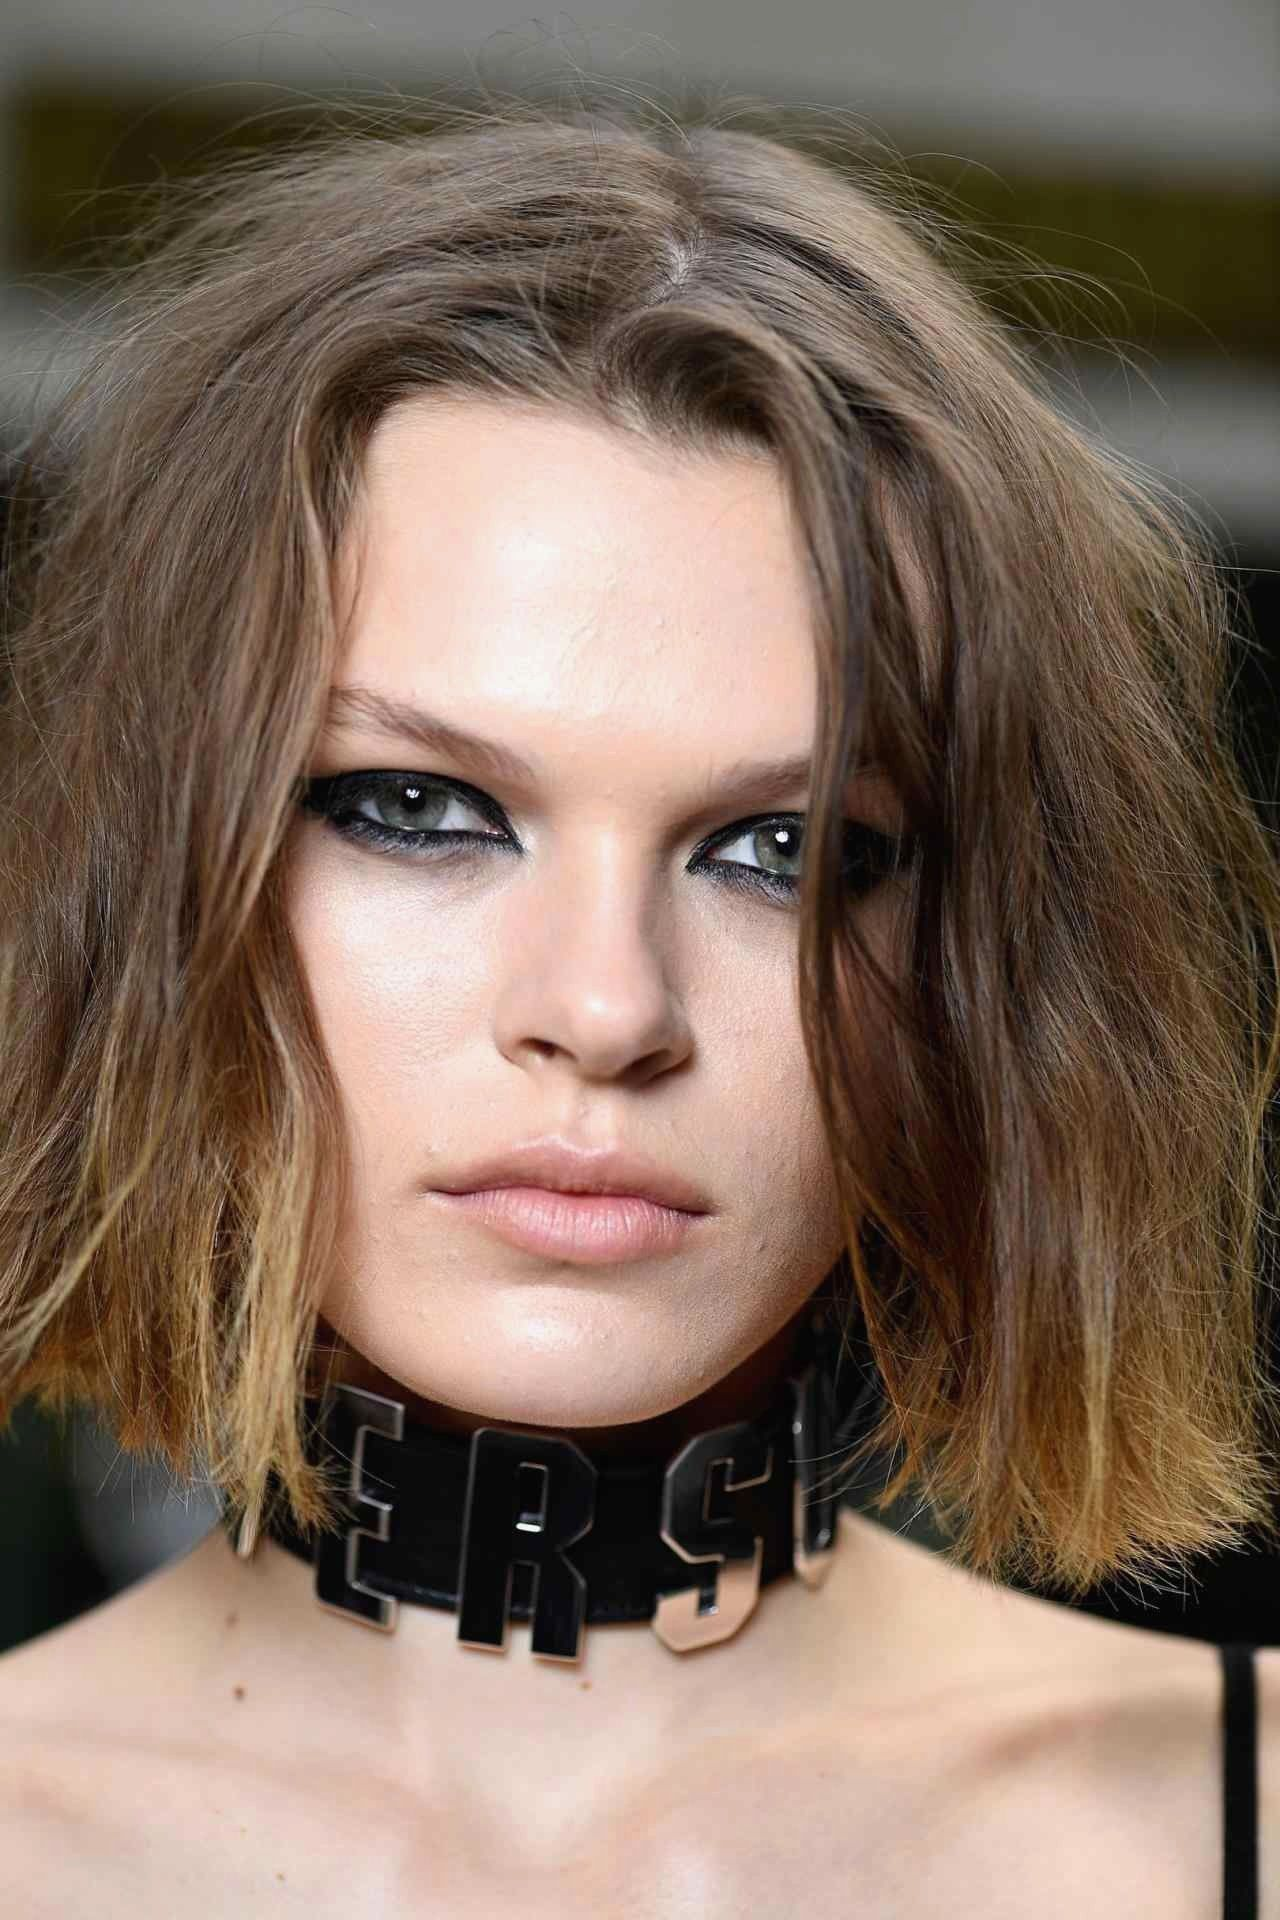 Frisuren 21 Vogue #frisuren #Frisuren21 #vogue | MAKE UP ...